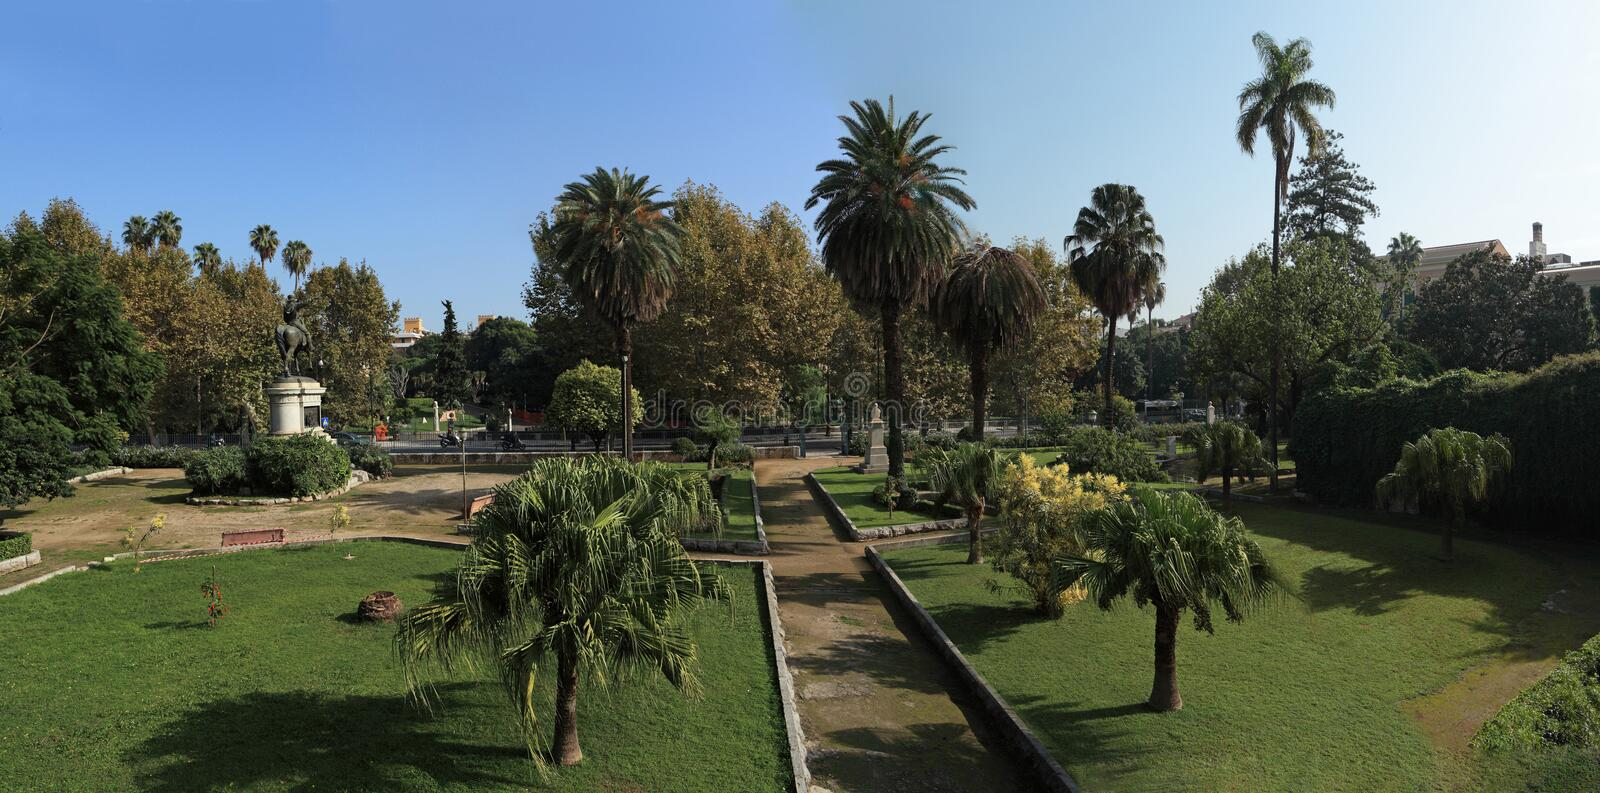 Download Garibaldi Garden In Palermo Stock Photography - Image: 19001172